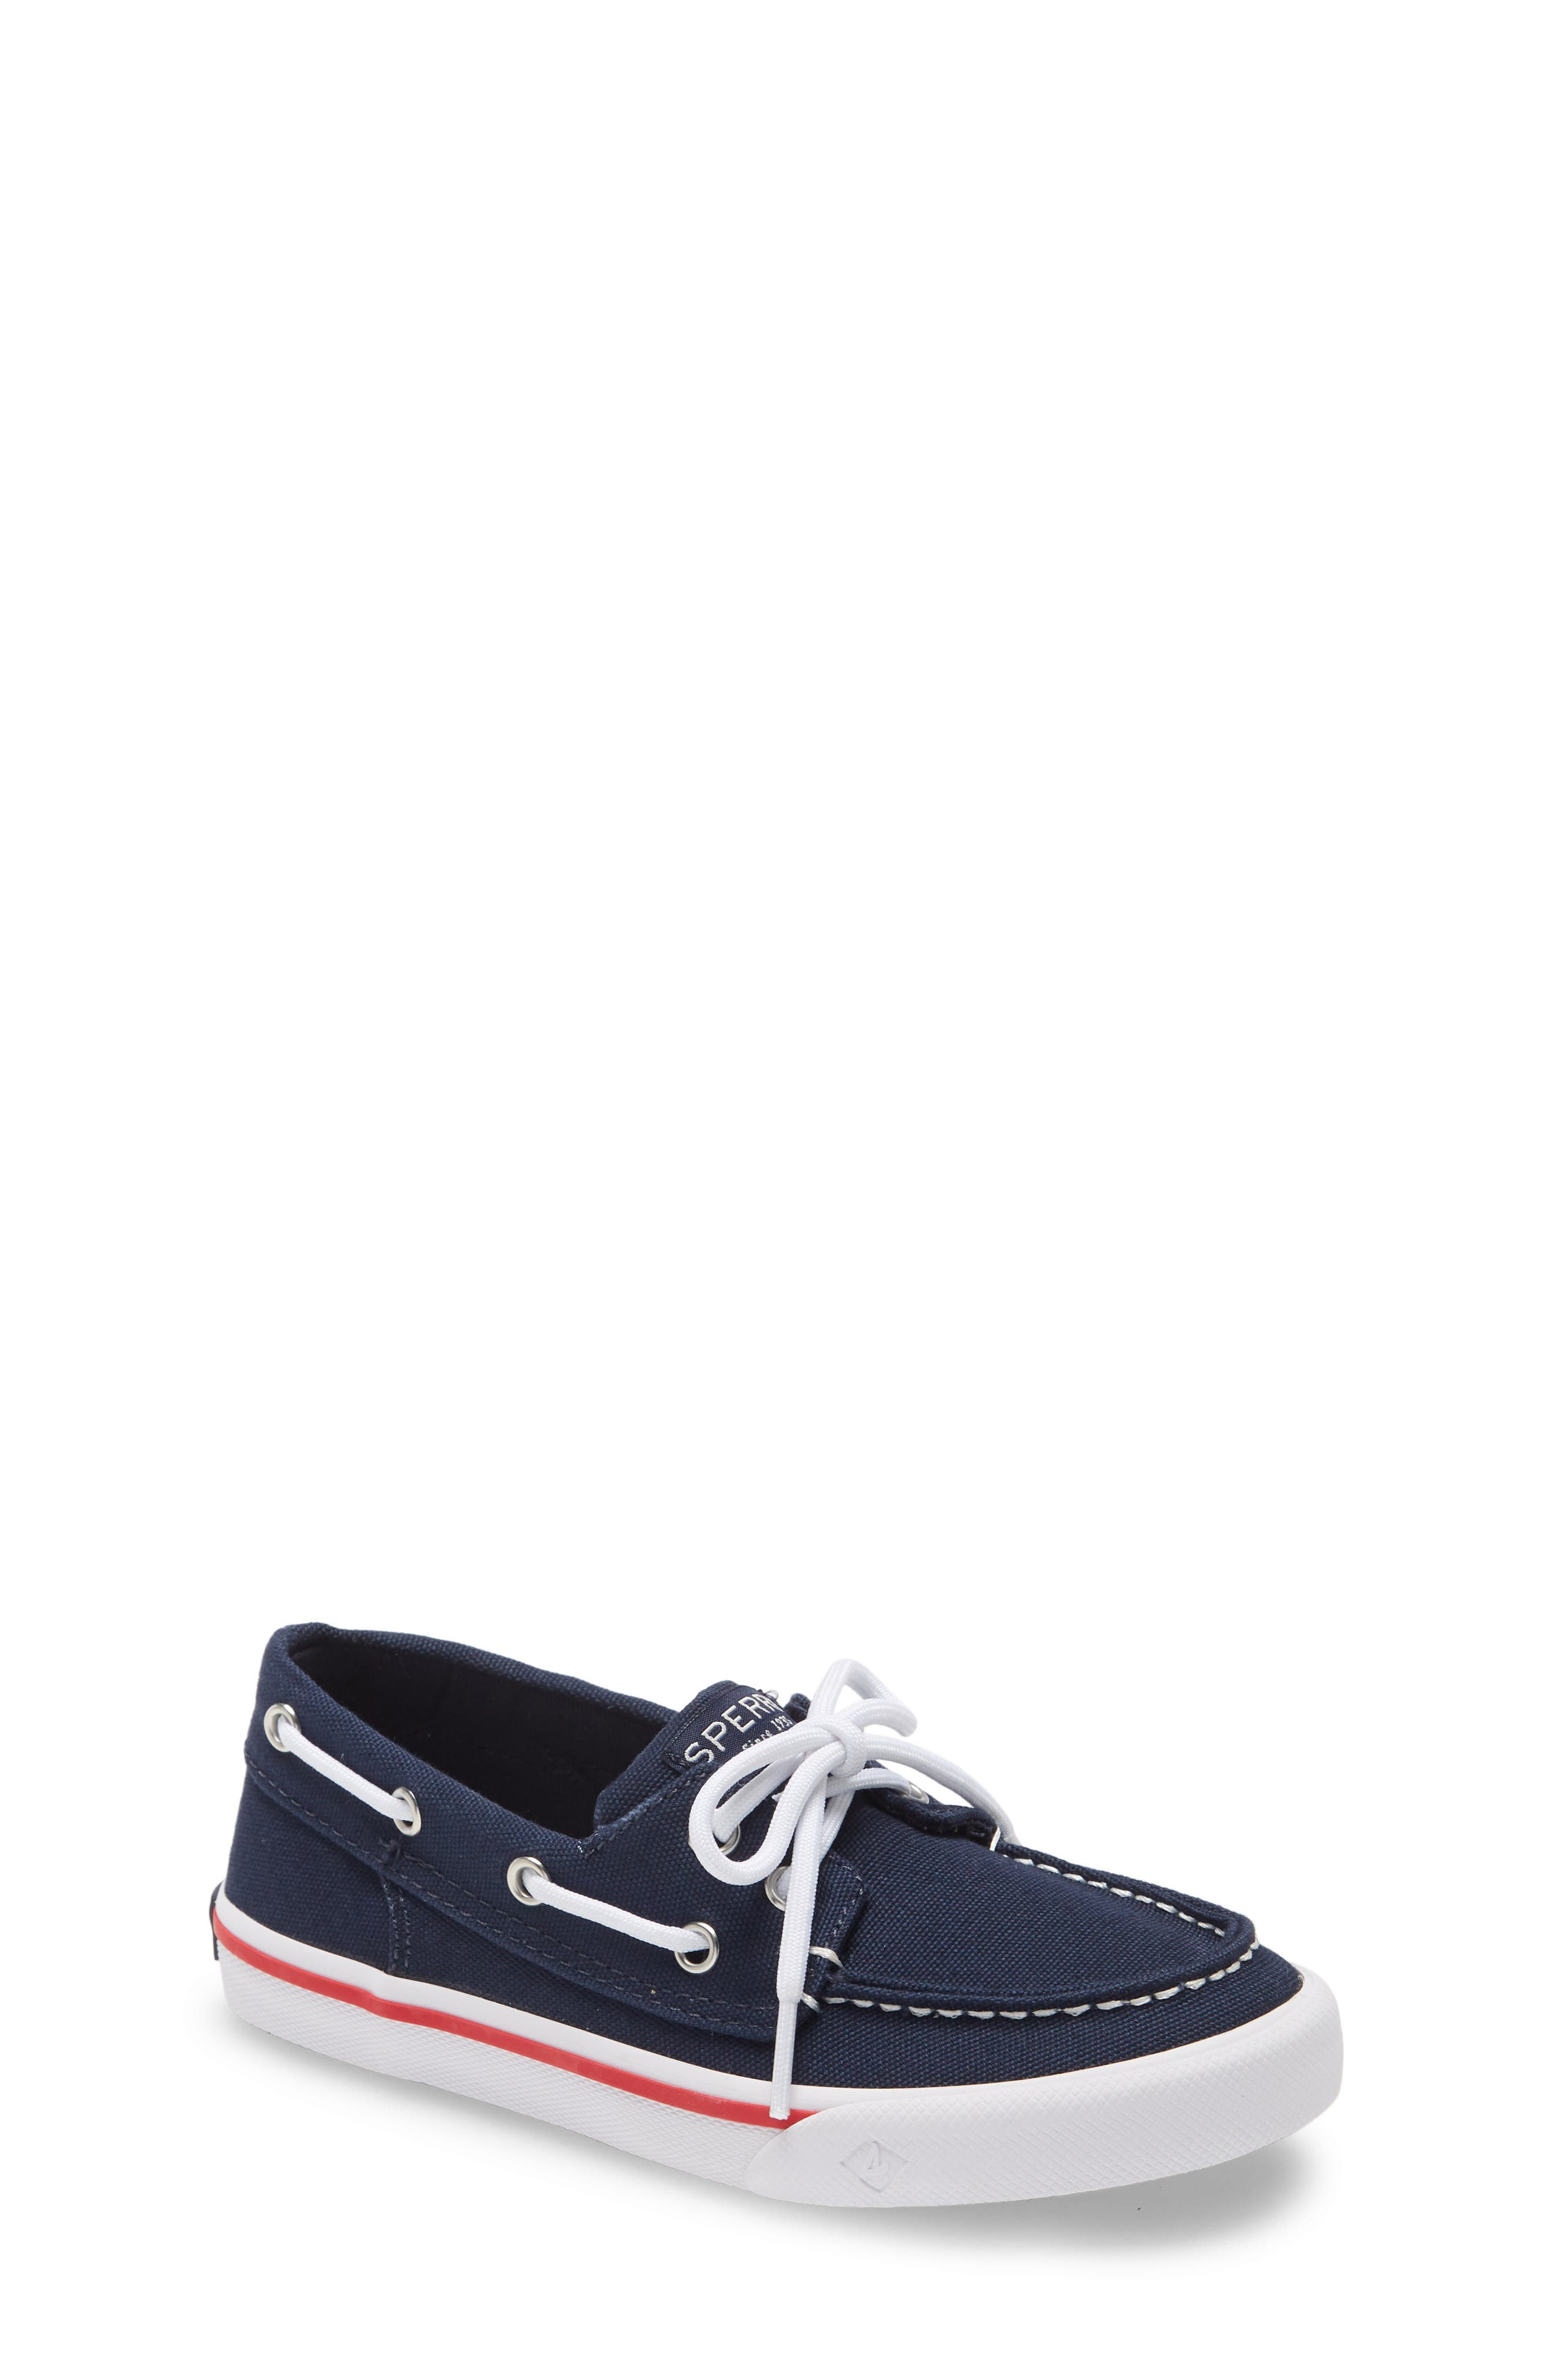 Boys' Sperry Kids Shoes